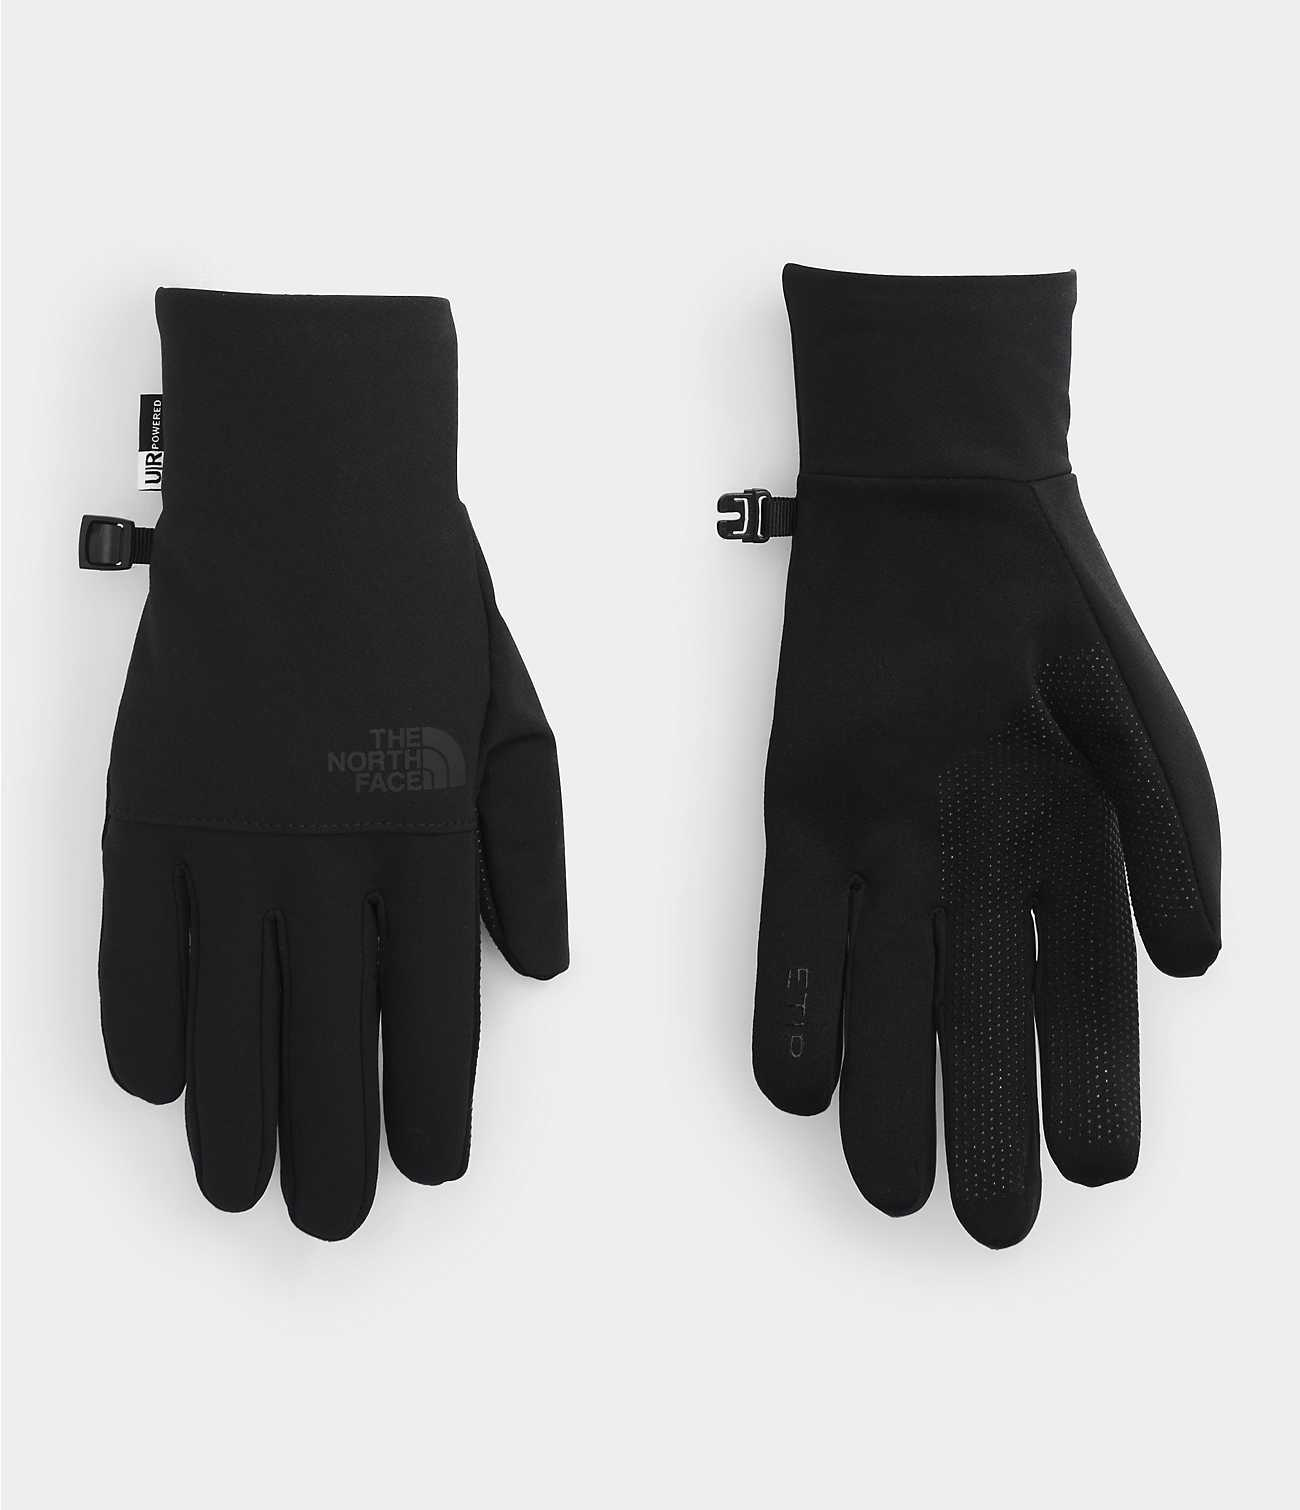 THE NORTH FACE M'S GLOVES ETIP RECYCLED TECH GLOVE